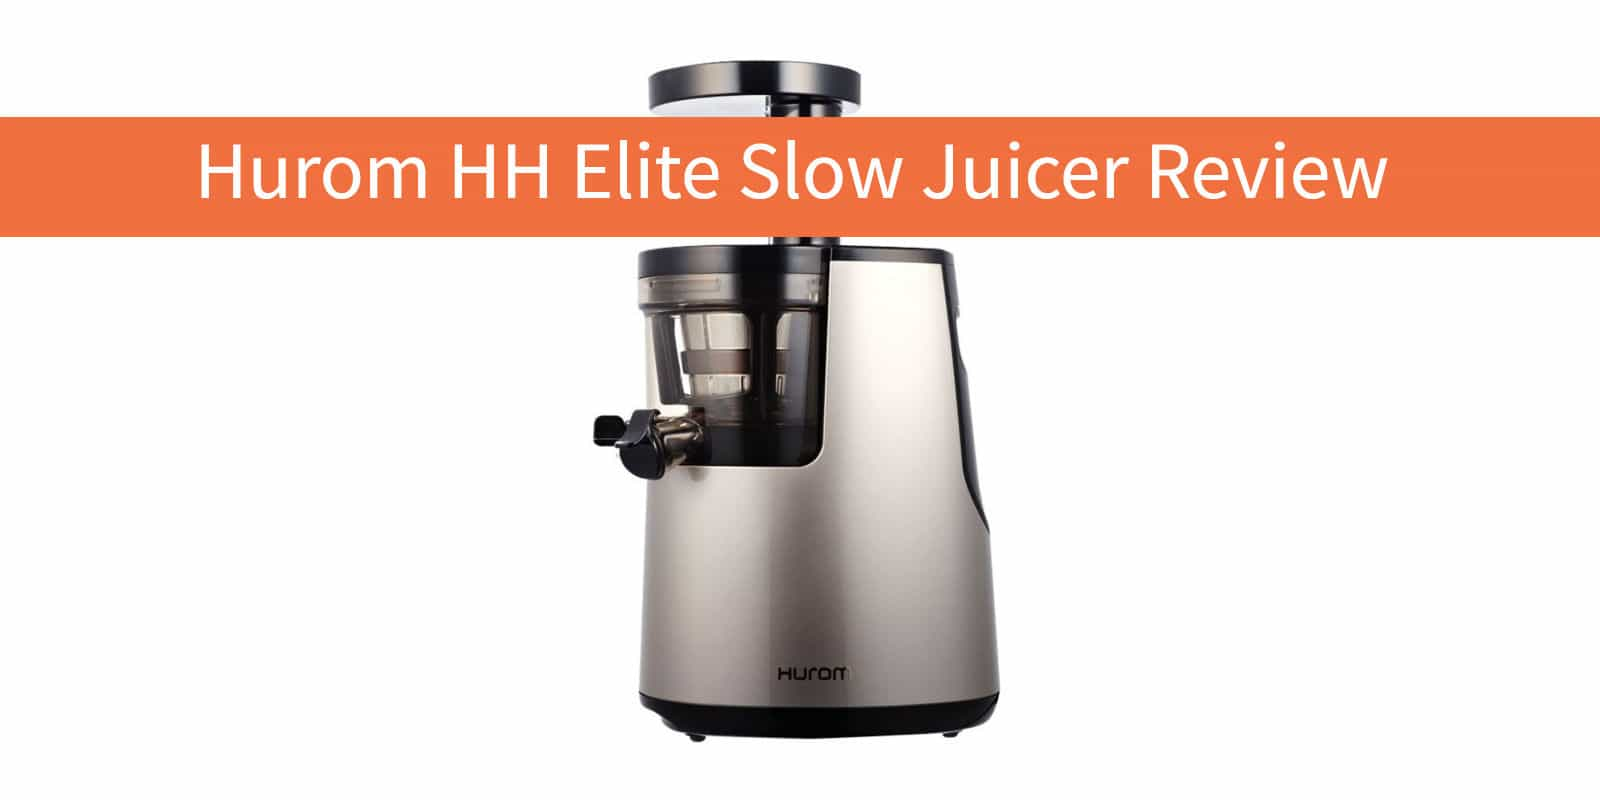 Best Vertical Slow Juicer 2018 : Hurom HH Elite Slow Juicer Review (2018) vegByte